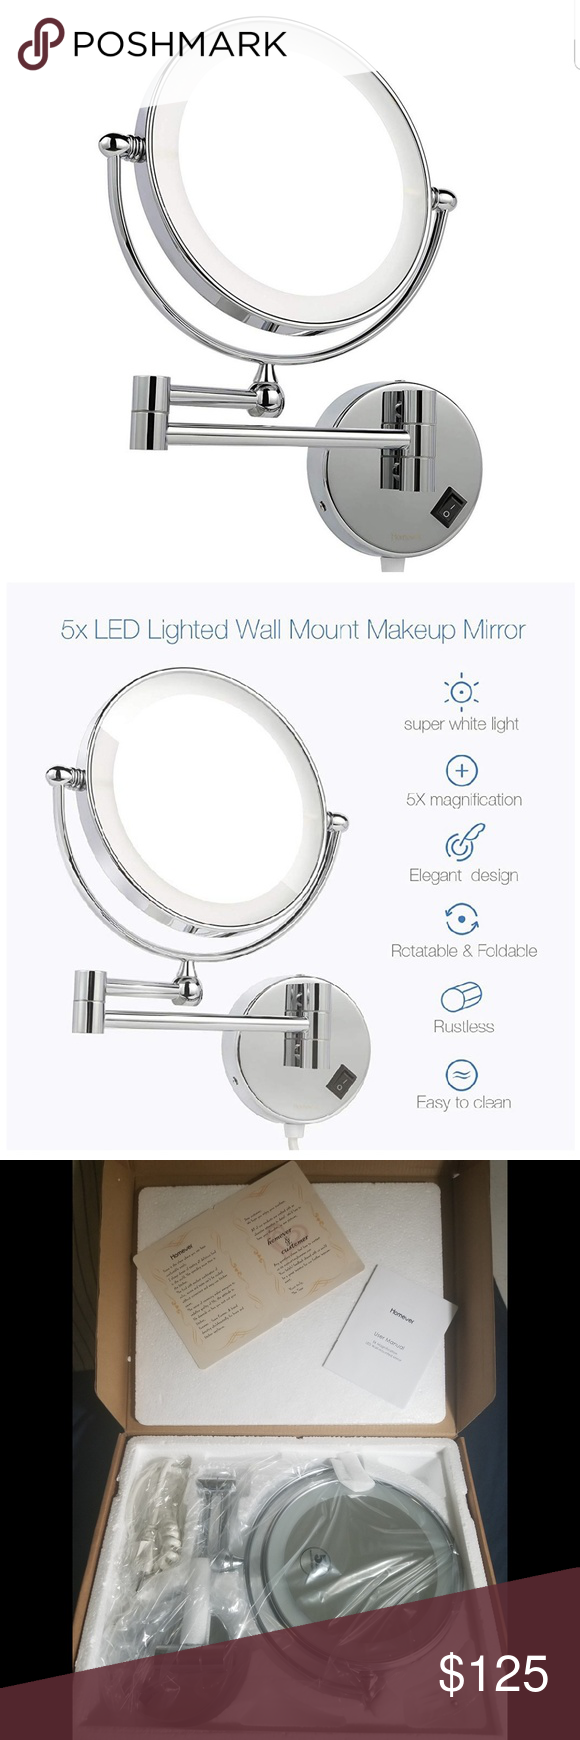 Homever Lighted Wall Mount Makeup Mirror with 1x/5 Size